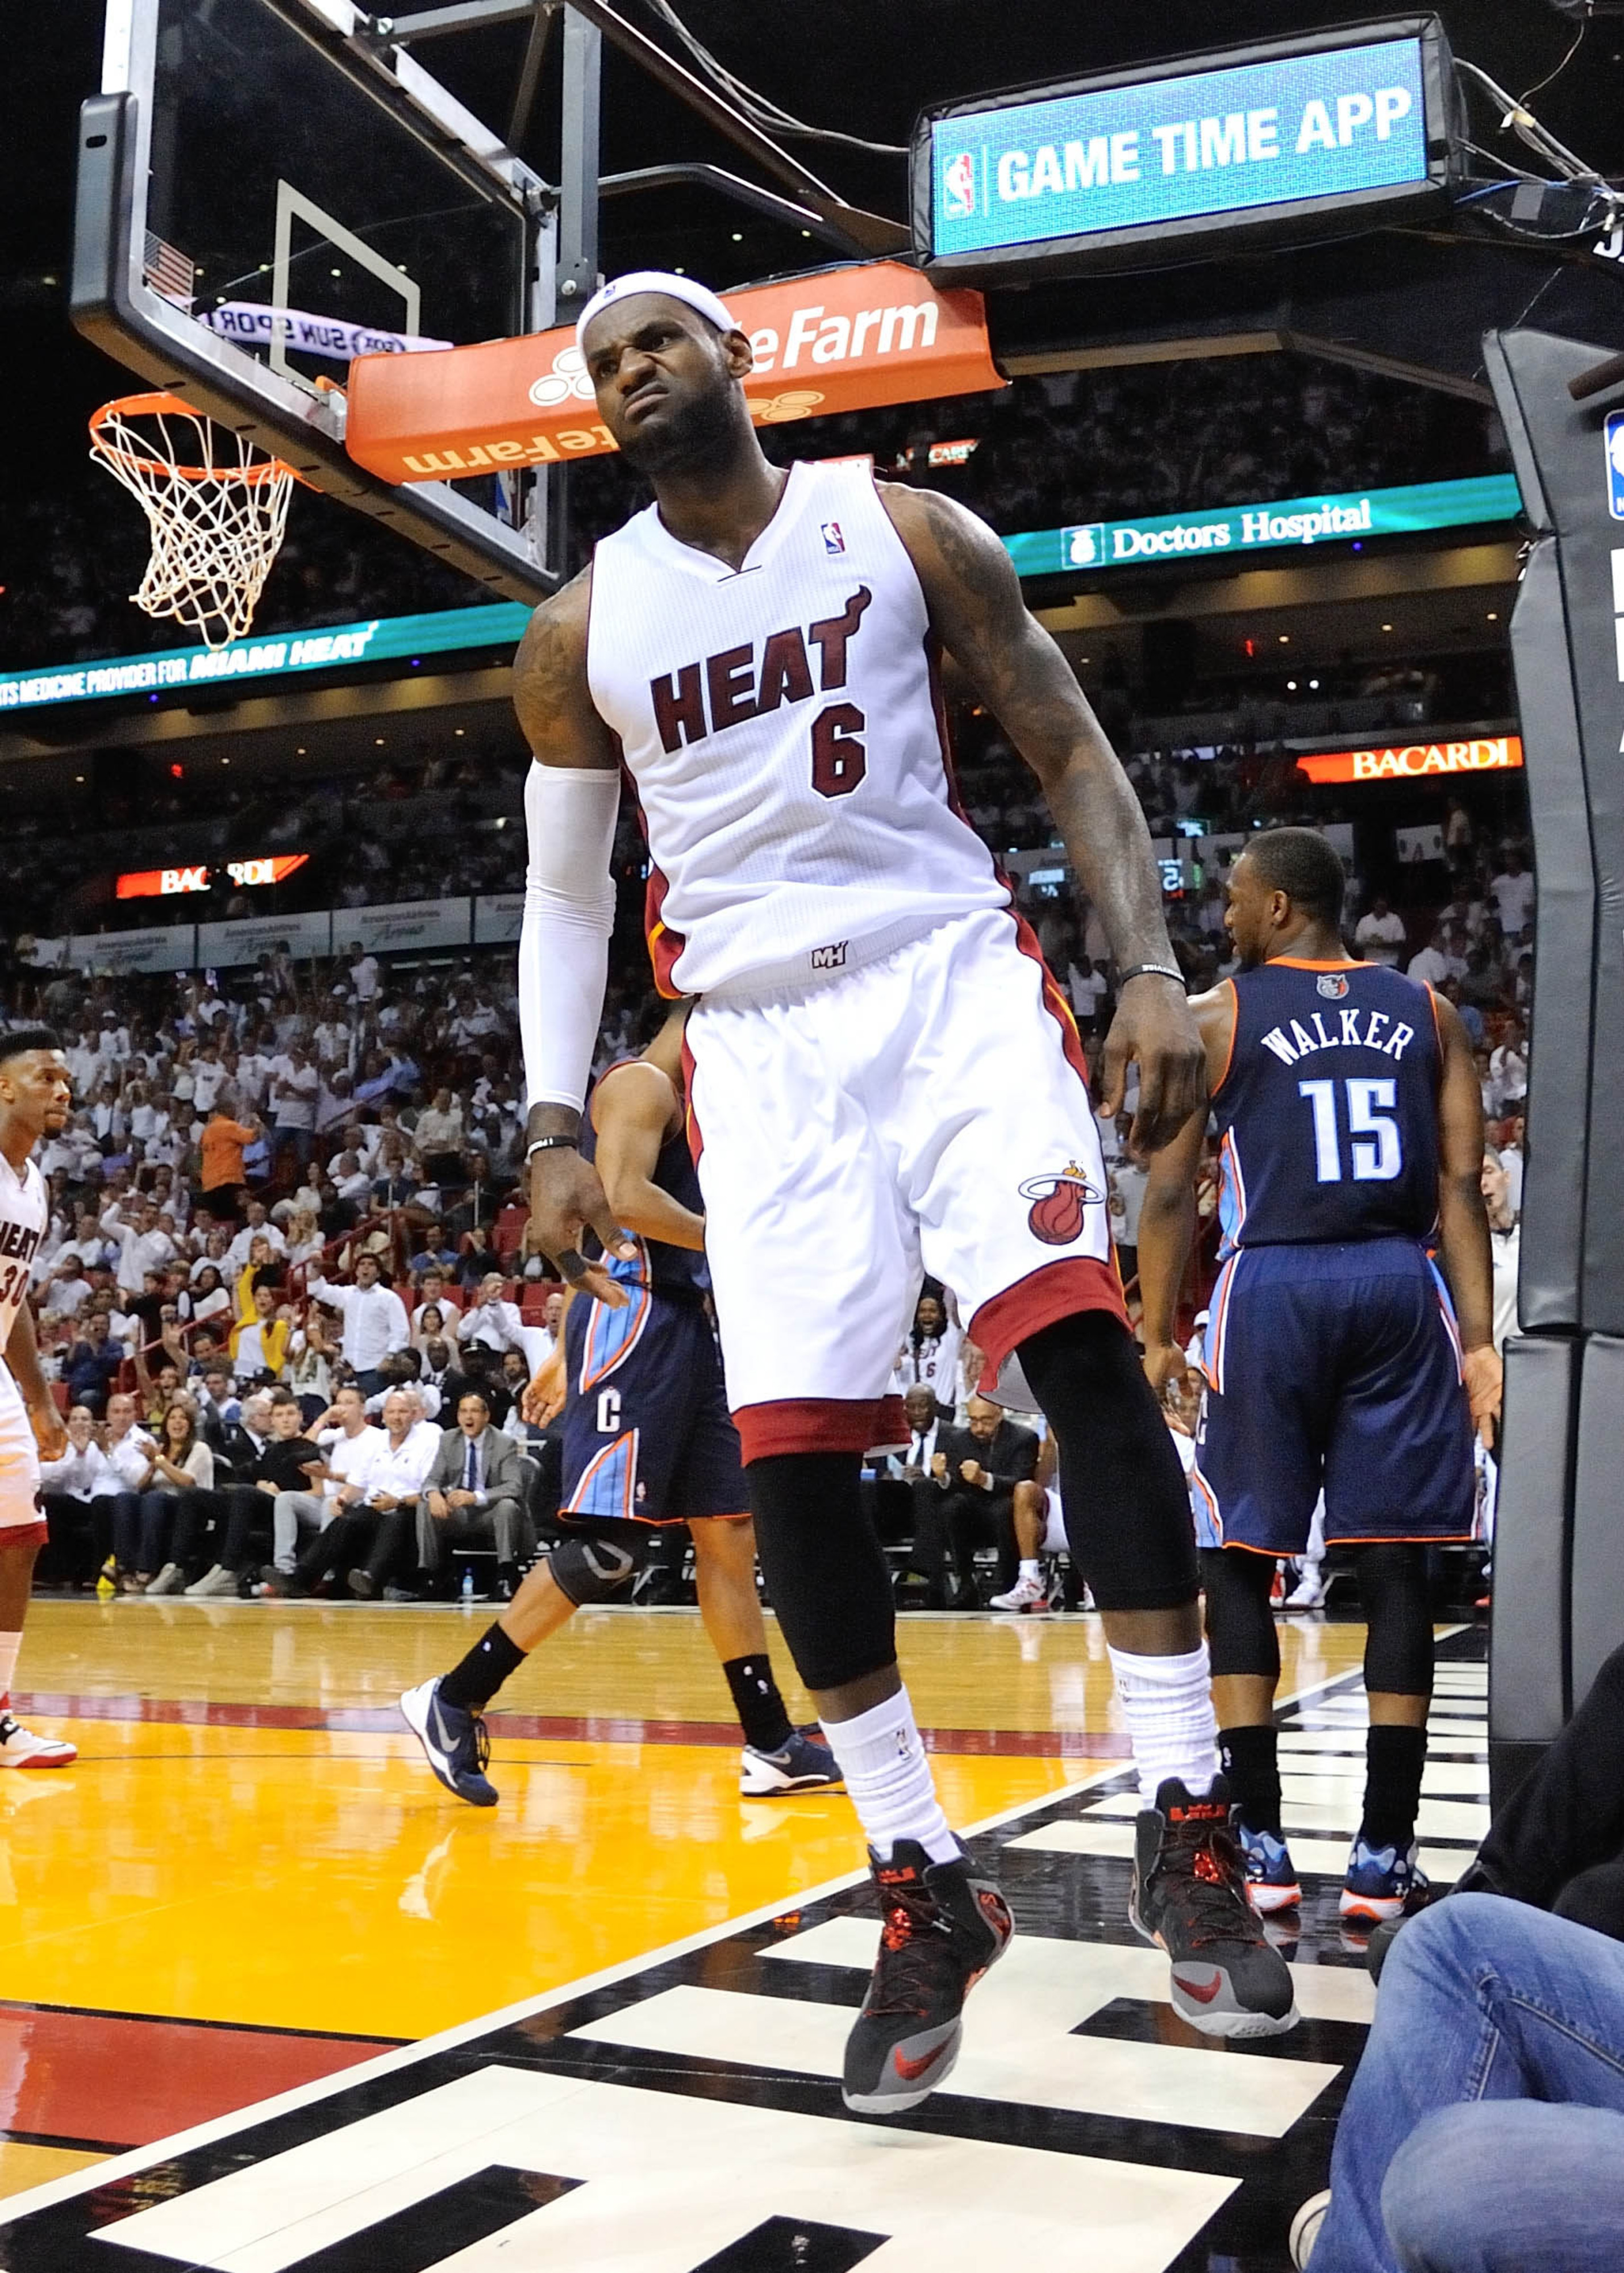 NBA playoffs 2014, Bobcats vs. Heat final score: LeBron James leads Miami to 101-97 win in Game 2